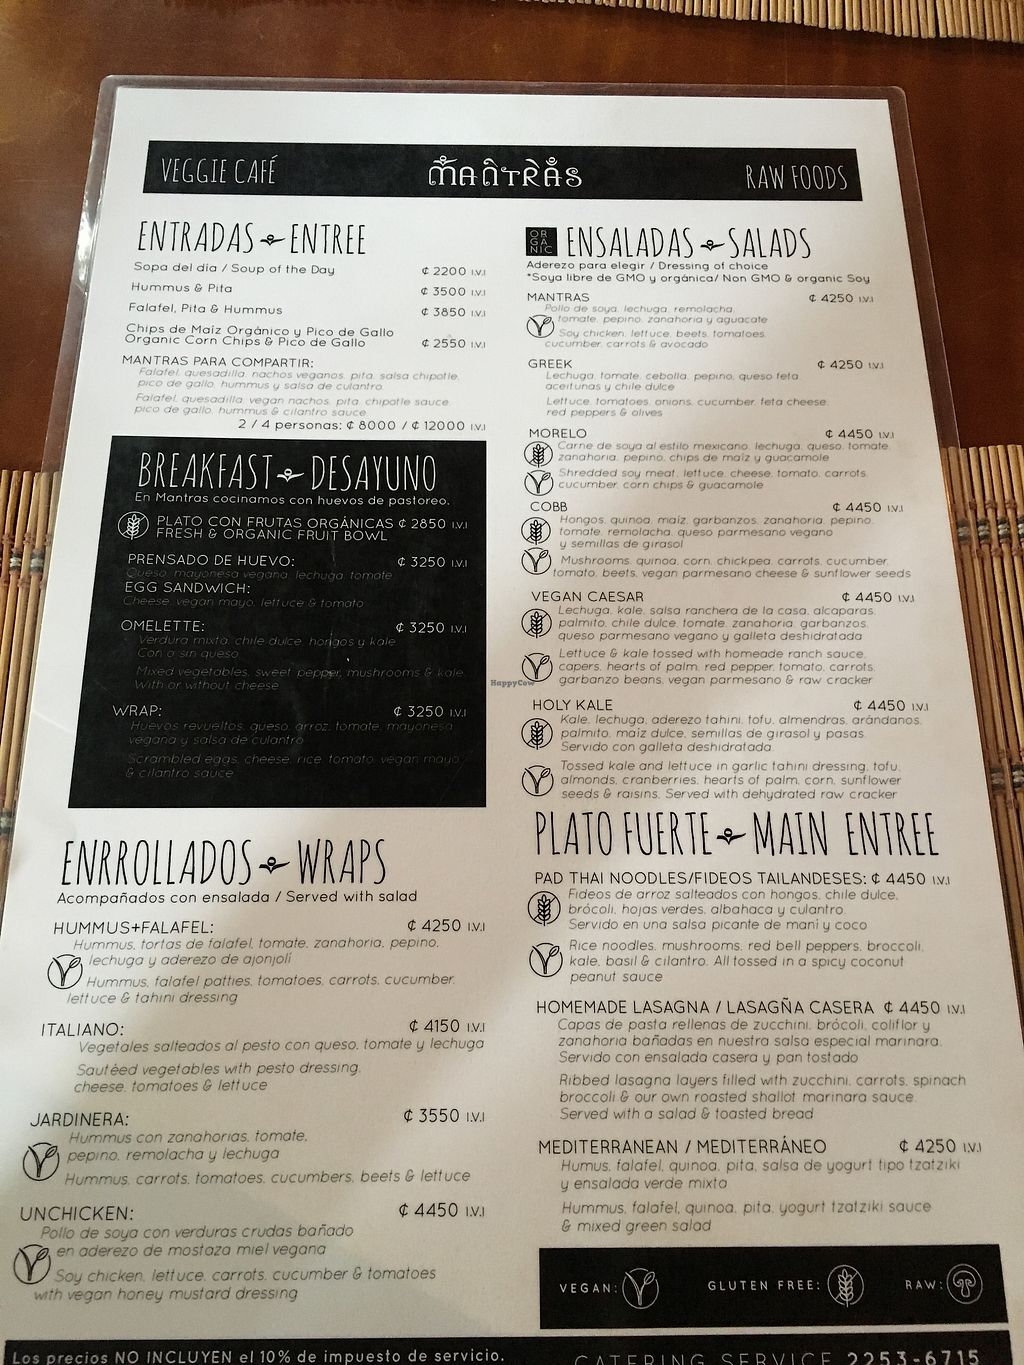 """Photo of Mantras Veggie Cafe and Tea House  by <a href=""""/members/profile/Daisygal168"""">Daisygal168</a> <br/>Menu <br/> September 22, 2017  - <a href='/contact/abuse/image/18650/307204'>Report</a>"""